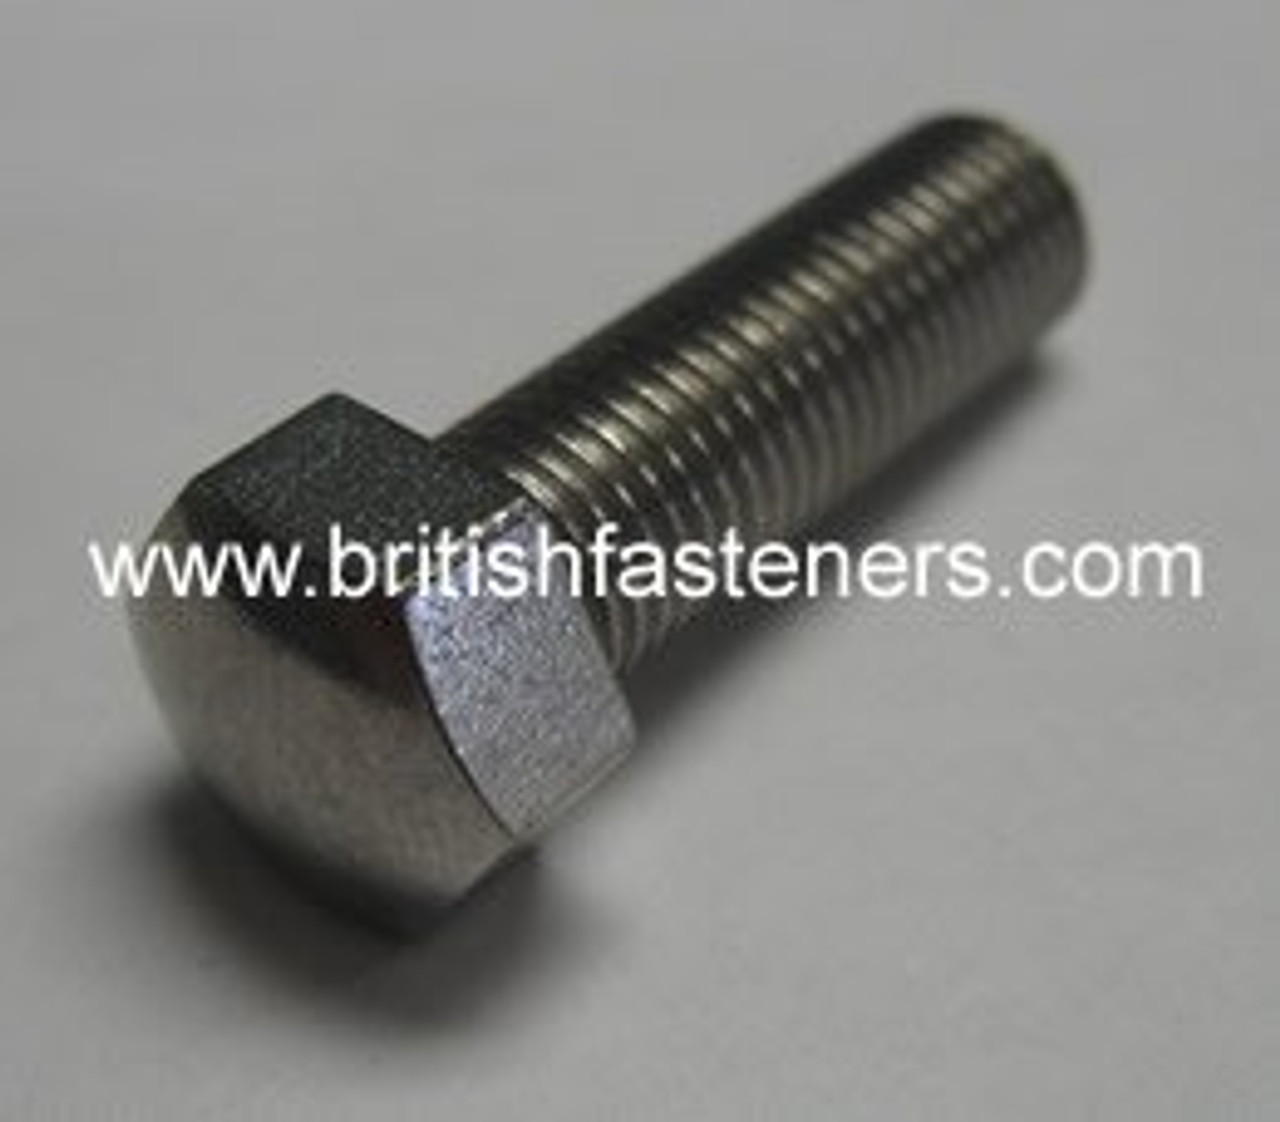 """BSC - CEI 5/16"""" - 26 X 5/8"""" SMALL HEX DOME SCREW S/S - (6760A)"""